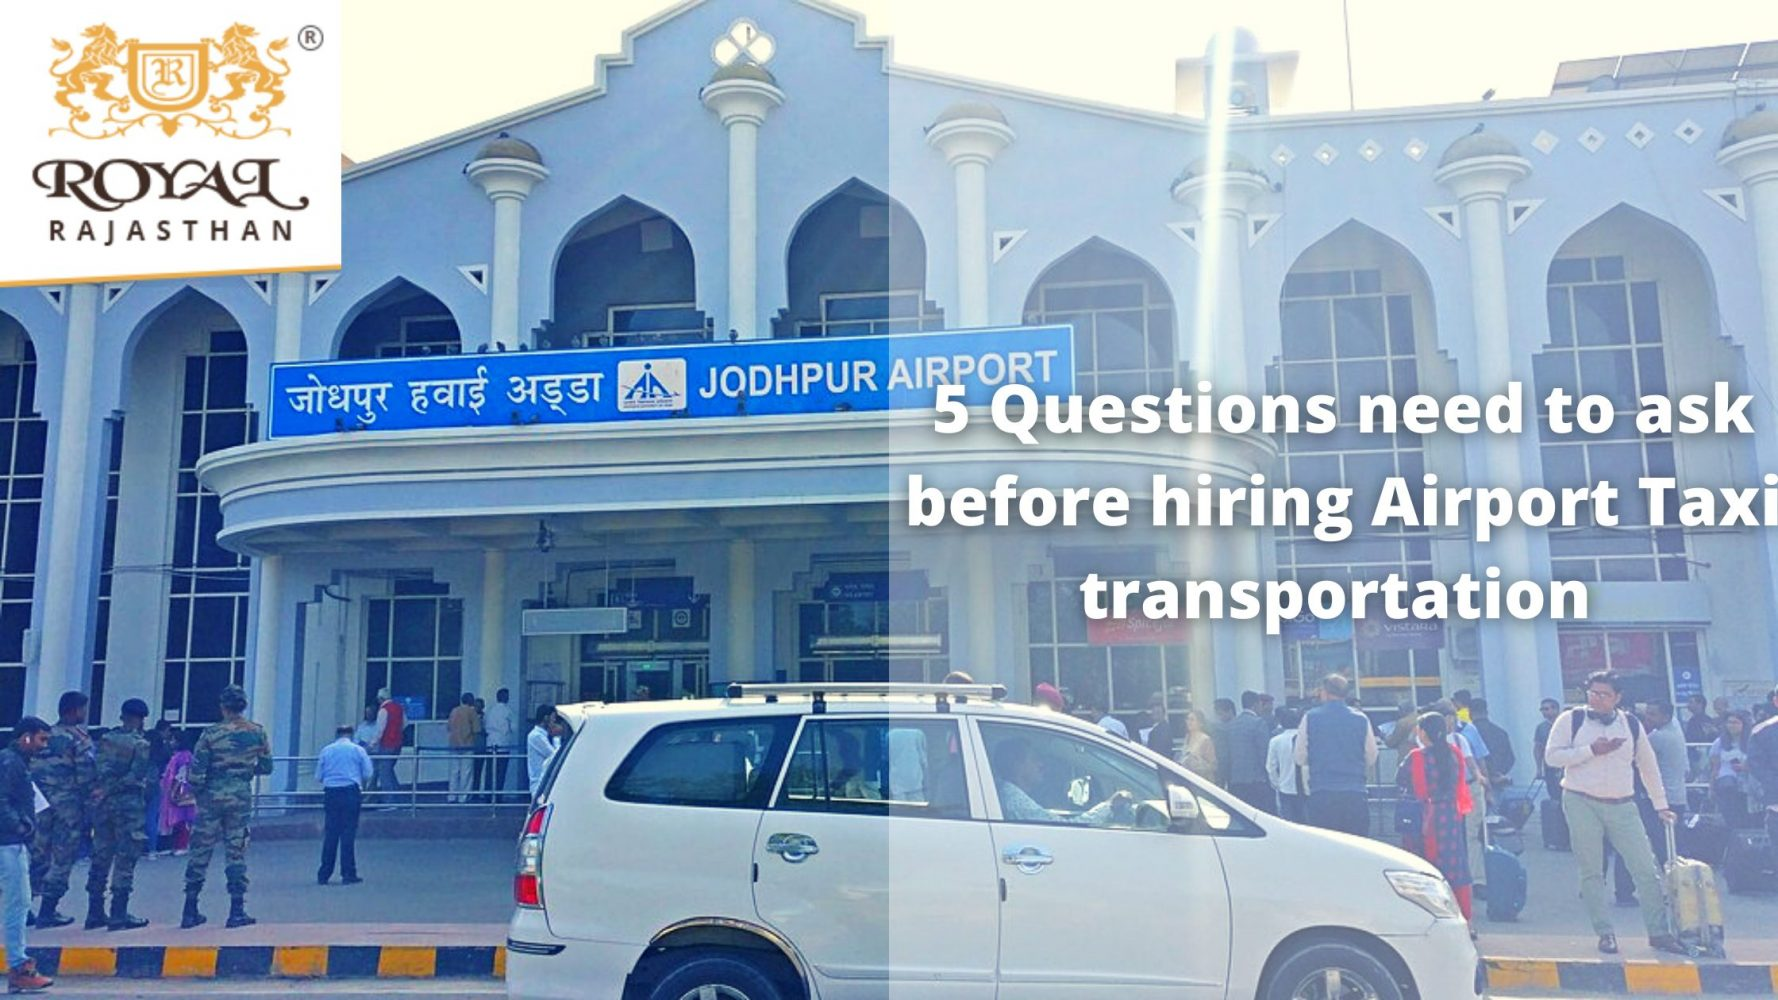 5 Questions need to ask before hiring Airport Taxi transportation